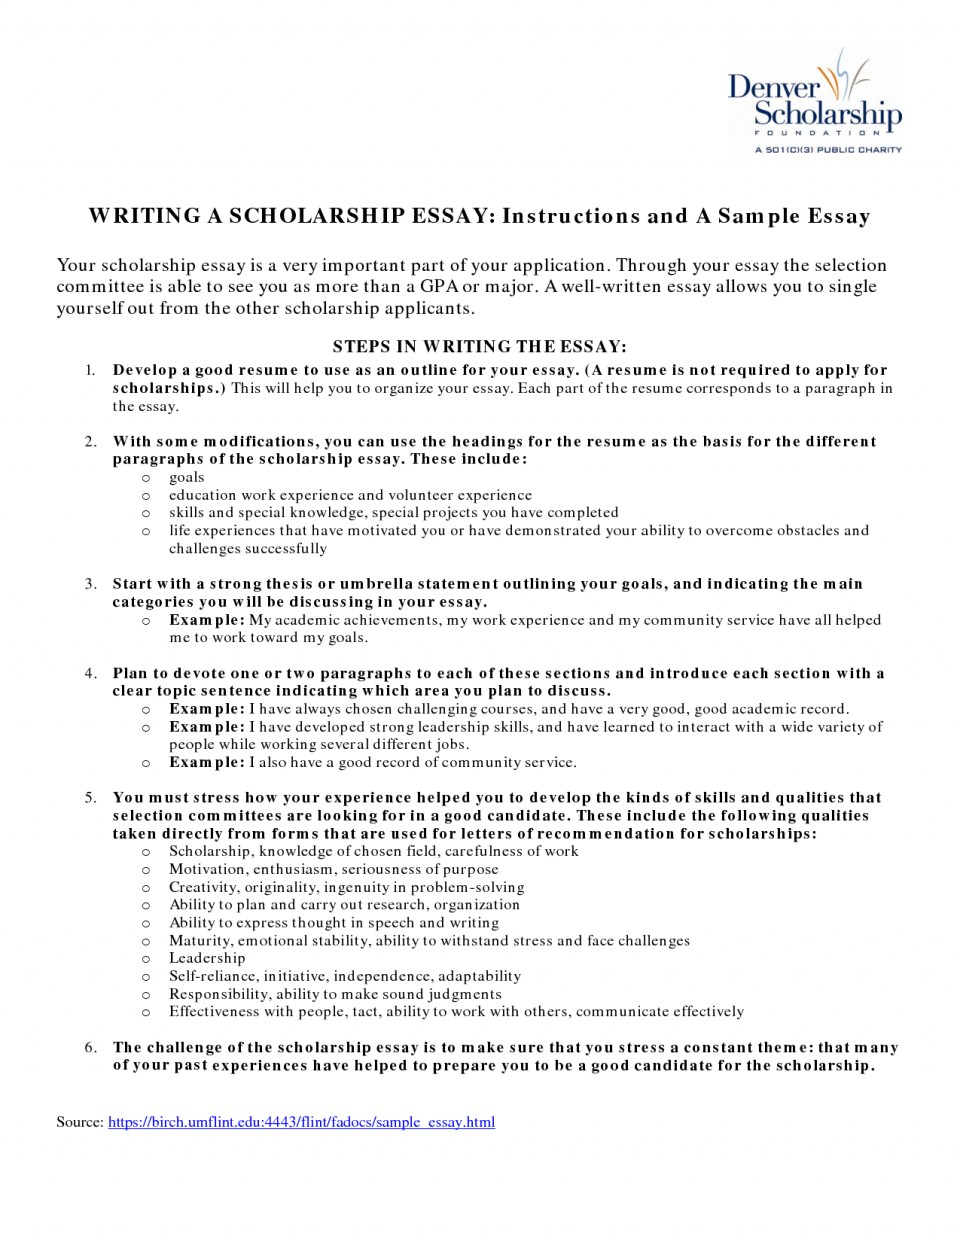 023 Essay Example What To Write For Scholarship About Yourself On Tips Writing Effective Essays Awesome A How That Stands Out Your Career Goals Financial Need 960